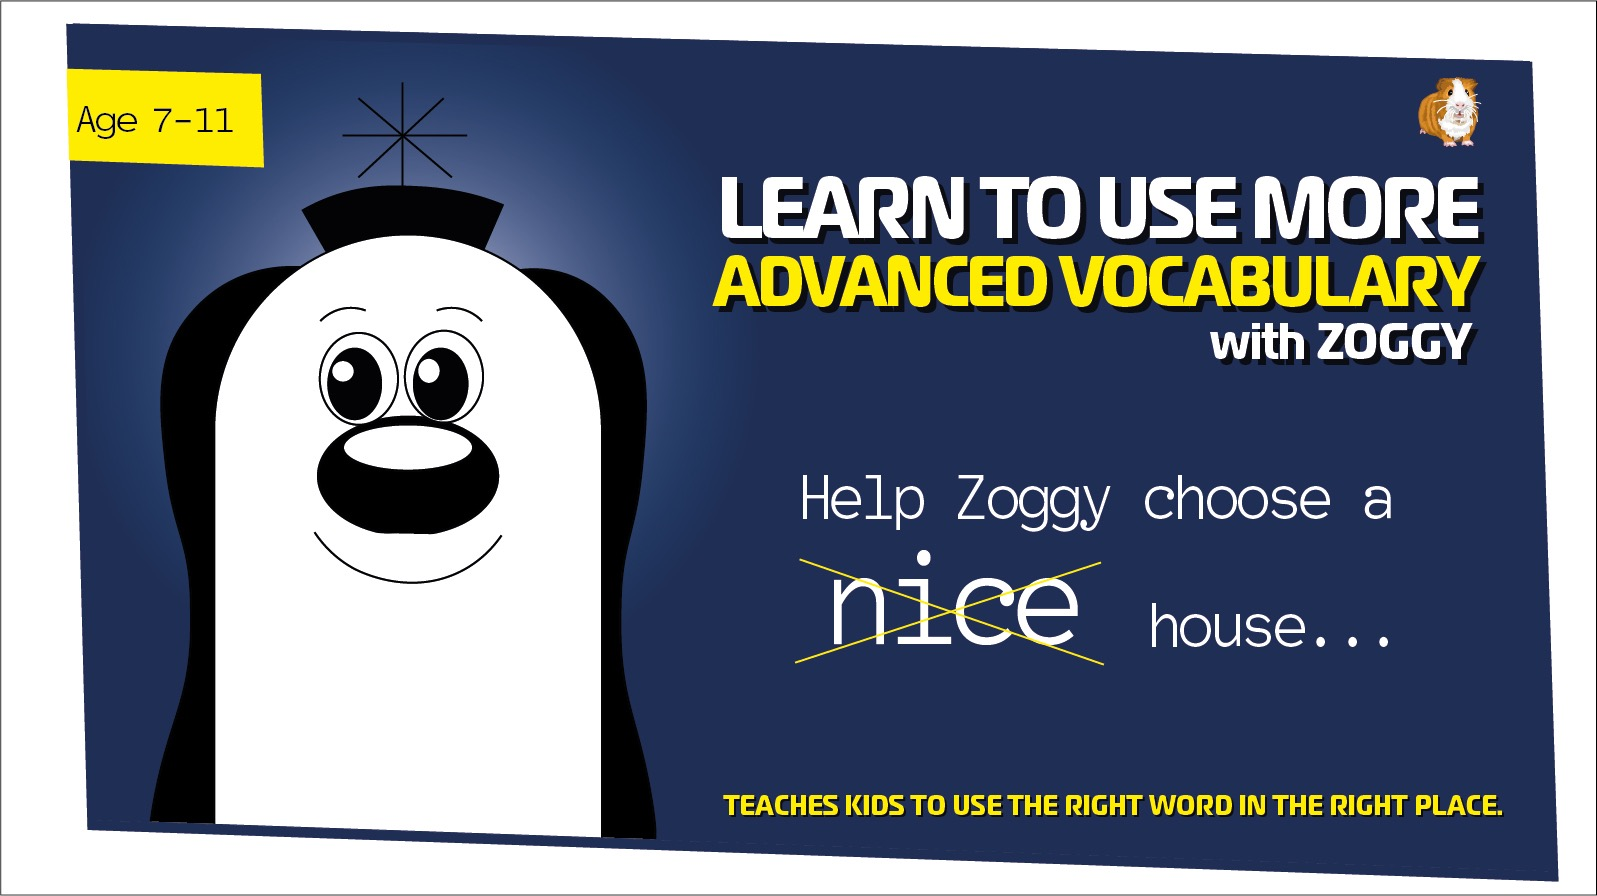 Improve Vocabulary Worksheet: Replace The Word Nice - Part 2 (Age 7-11)